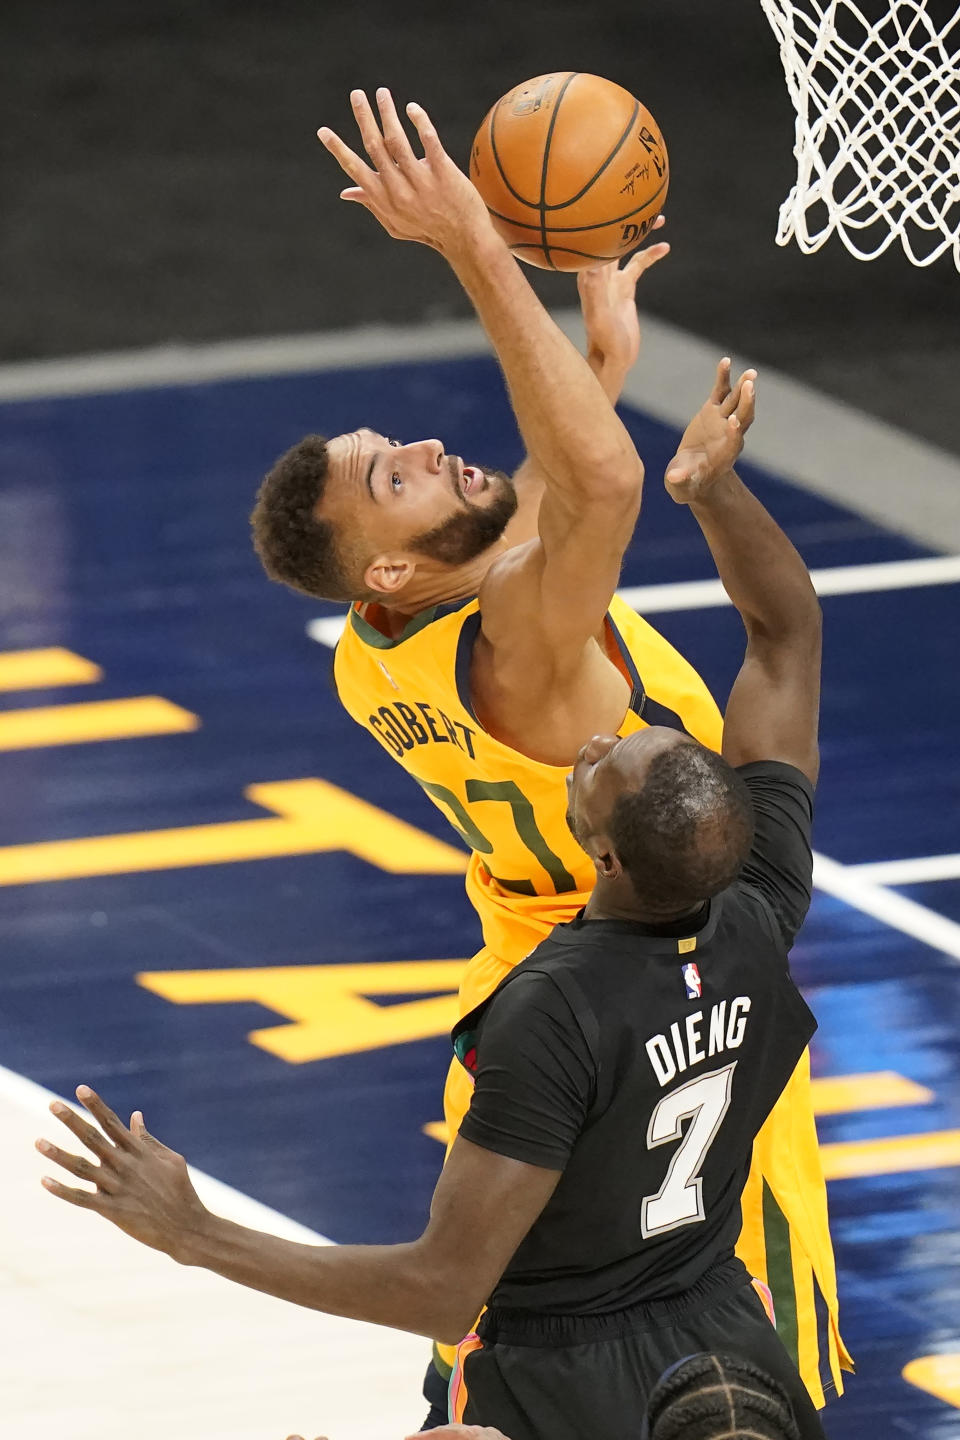 Utah Jazz center Rudy Gobert (27) and San Antonio Spurs center Gorgui Dieng (7) battle for a rebound in the first half during an NBA basketball game Monday, May 3, 2021, in Salt Lake City. (AP Photo/Rick Bowmer)